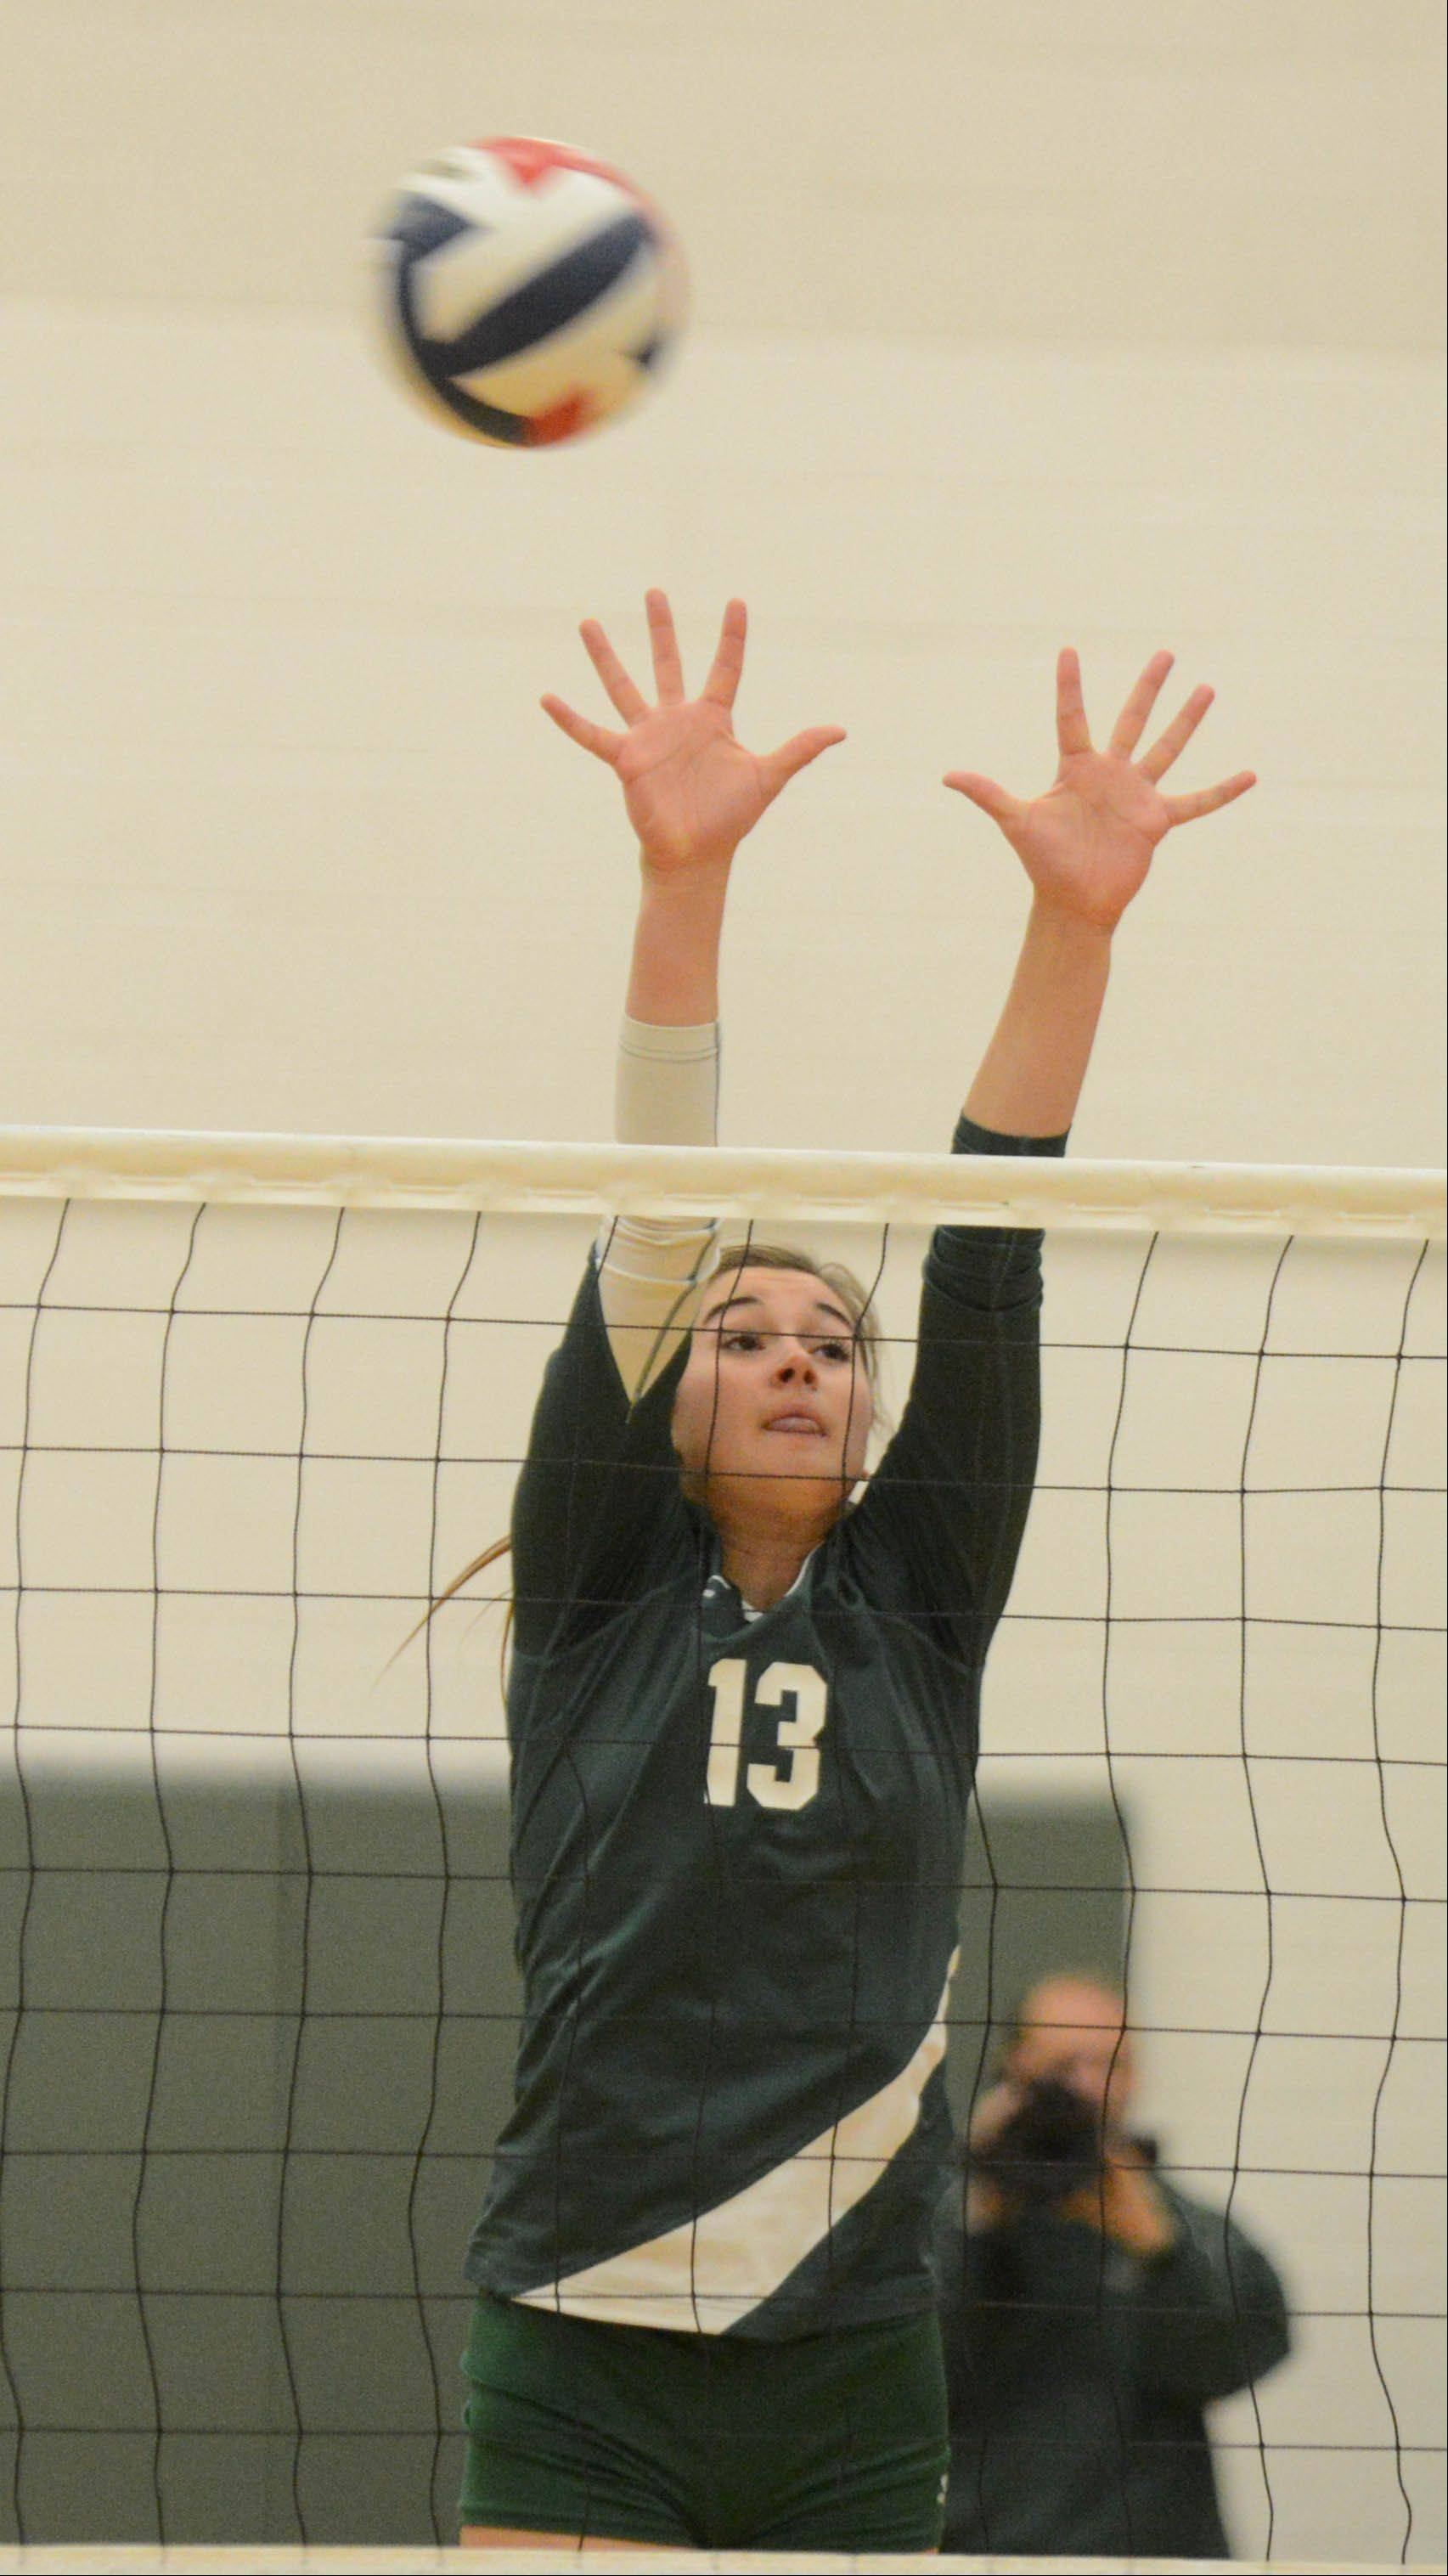 Brooke Burling of Waubonsie Valley goes up for the ball during the South Elgin at Waubonsie Valley girls volleyball game Tuesday.